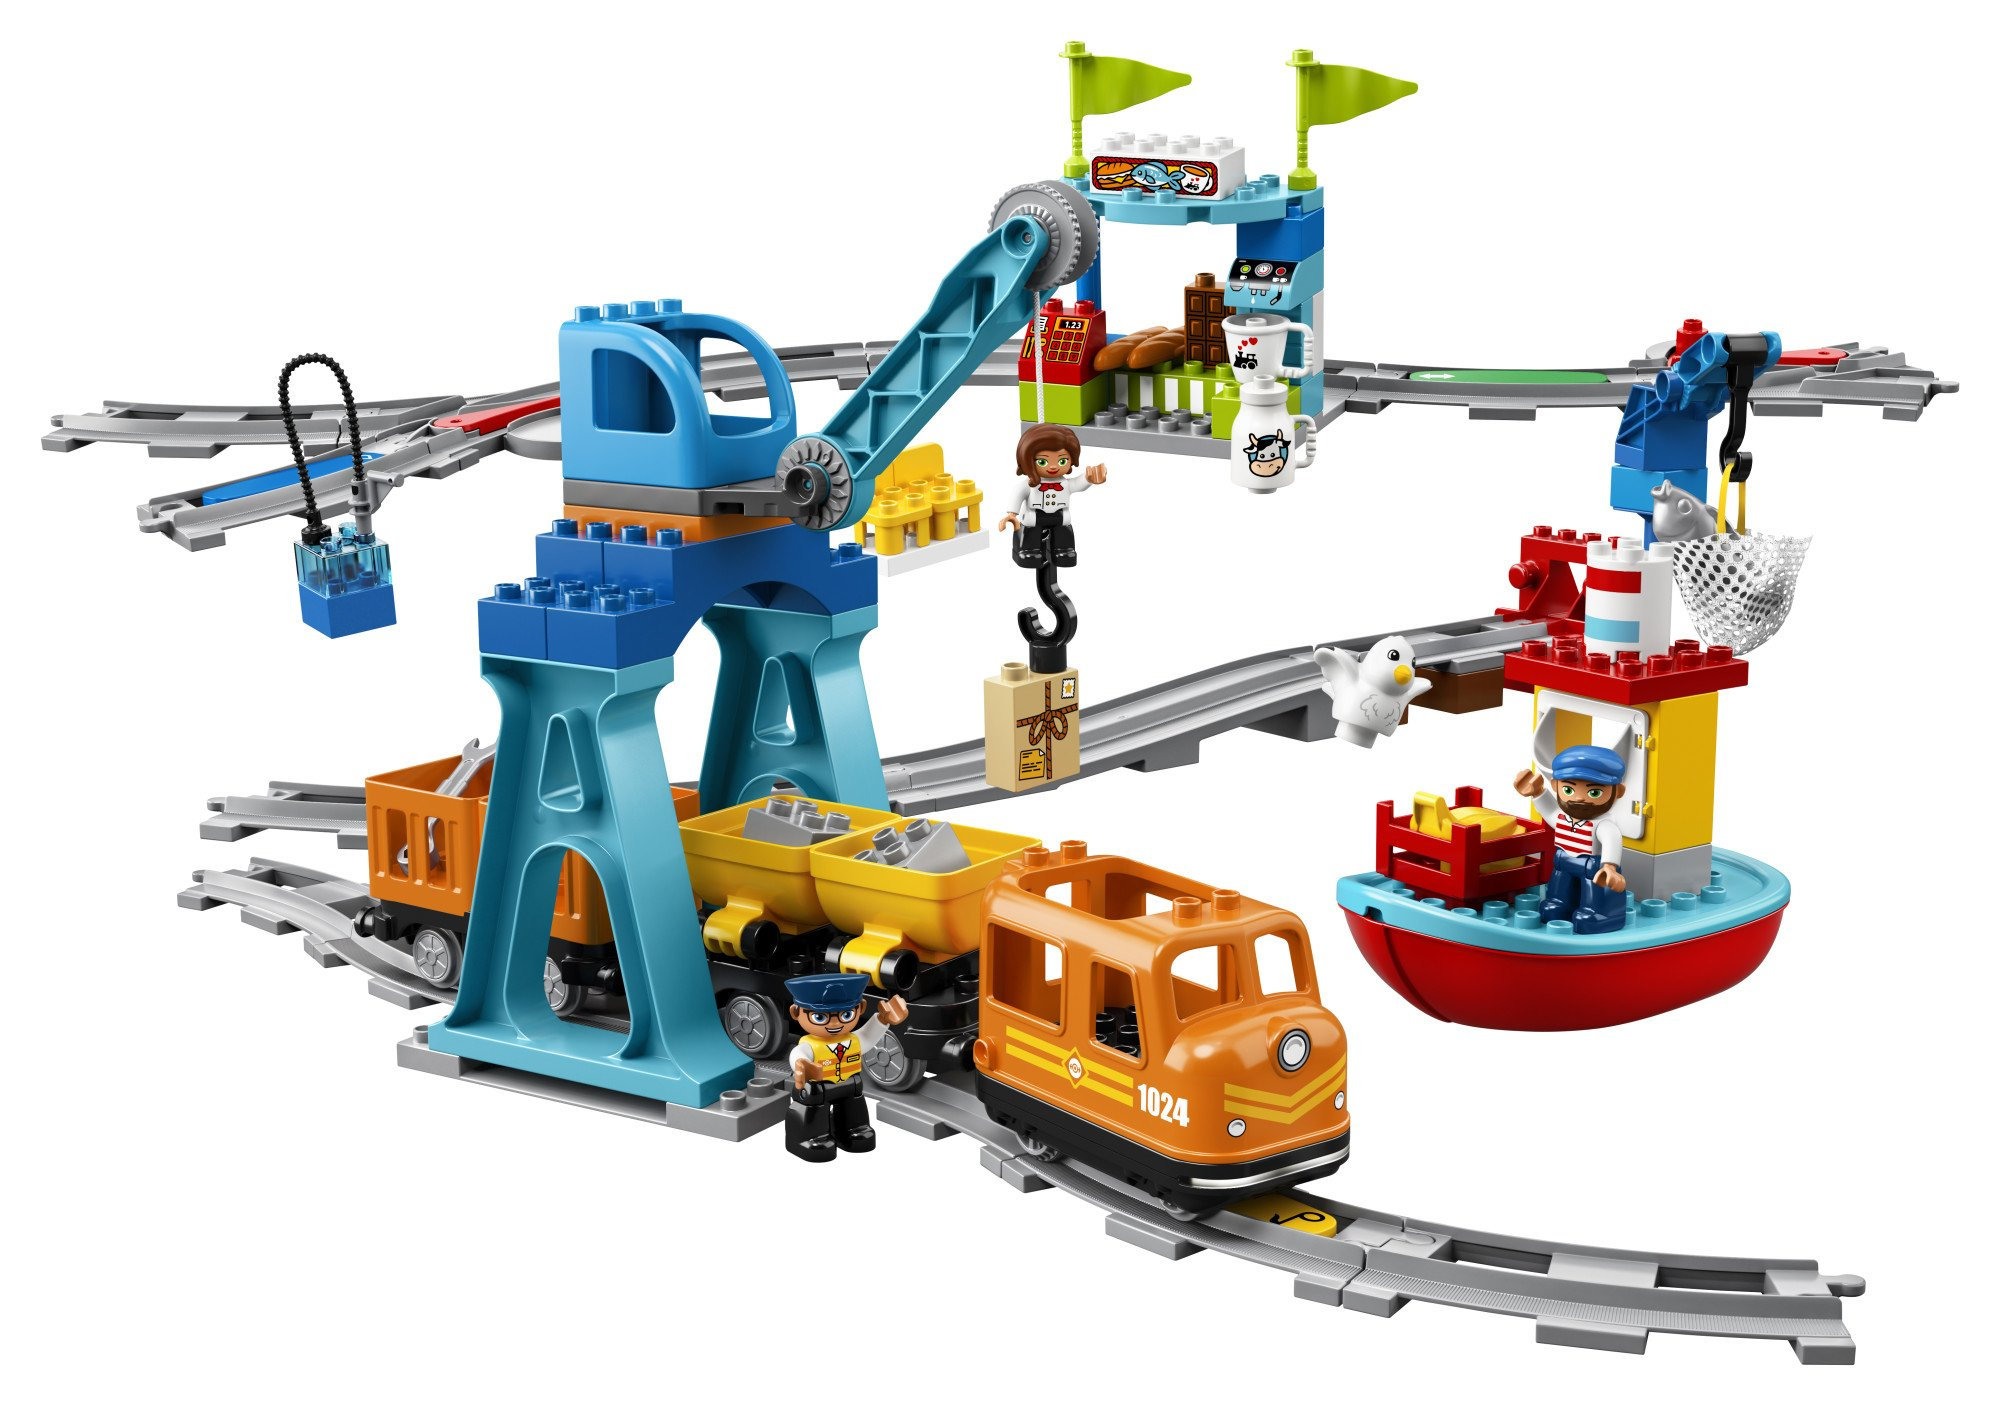 LEGO DUPLO Cargo Train 10875 Battery-Operated Building Blocks Set, Best Engineering and STEM Toy for Toddlers (105 Pieces) (Amazon Exclusive) by LEGO DUPLO Trains (Image #2)